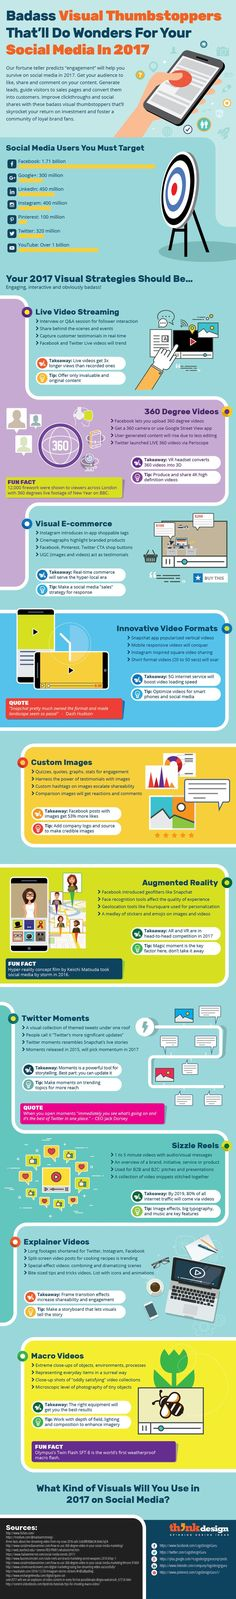 Badass Visual Thumbstoppers For Your Social Media In 2017 [Infographic]